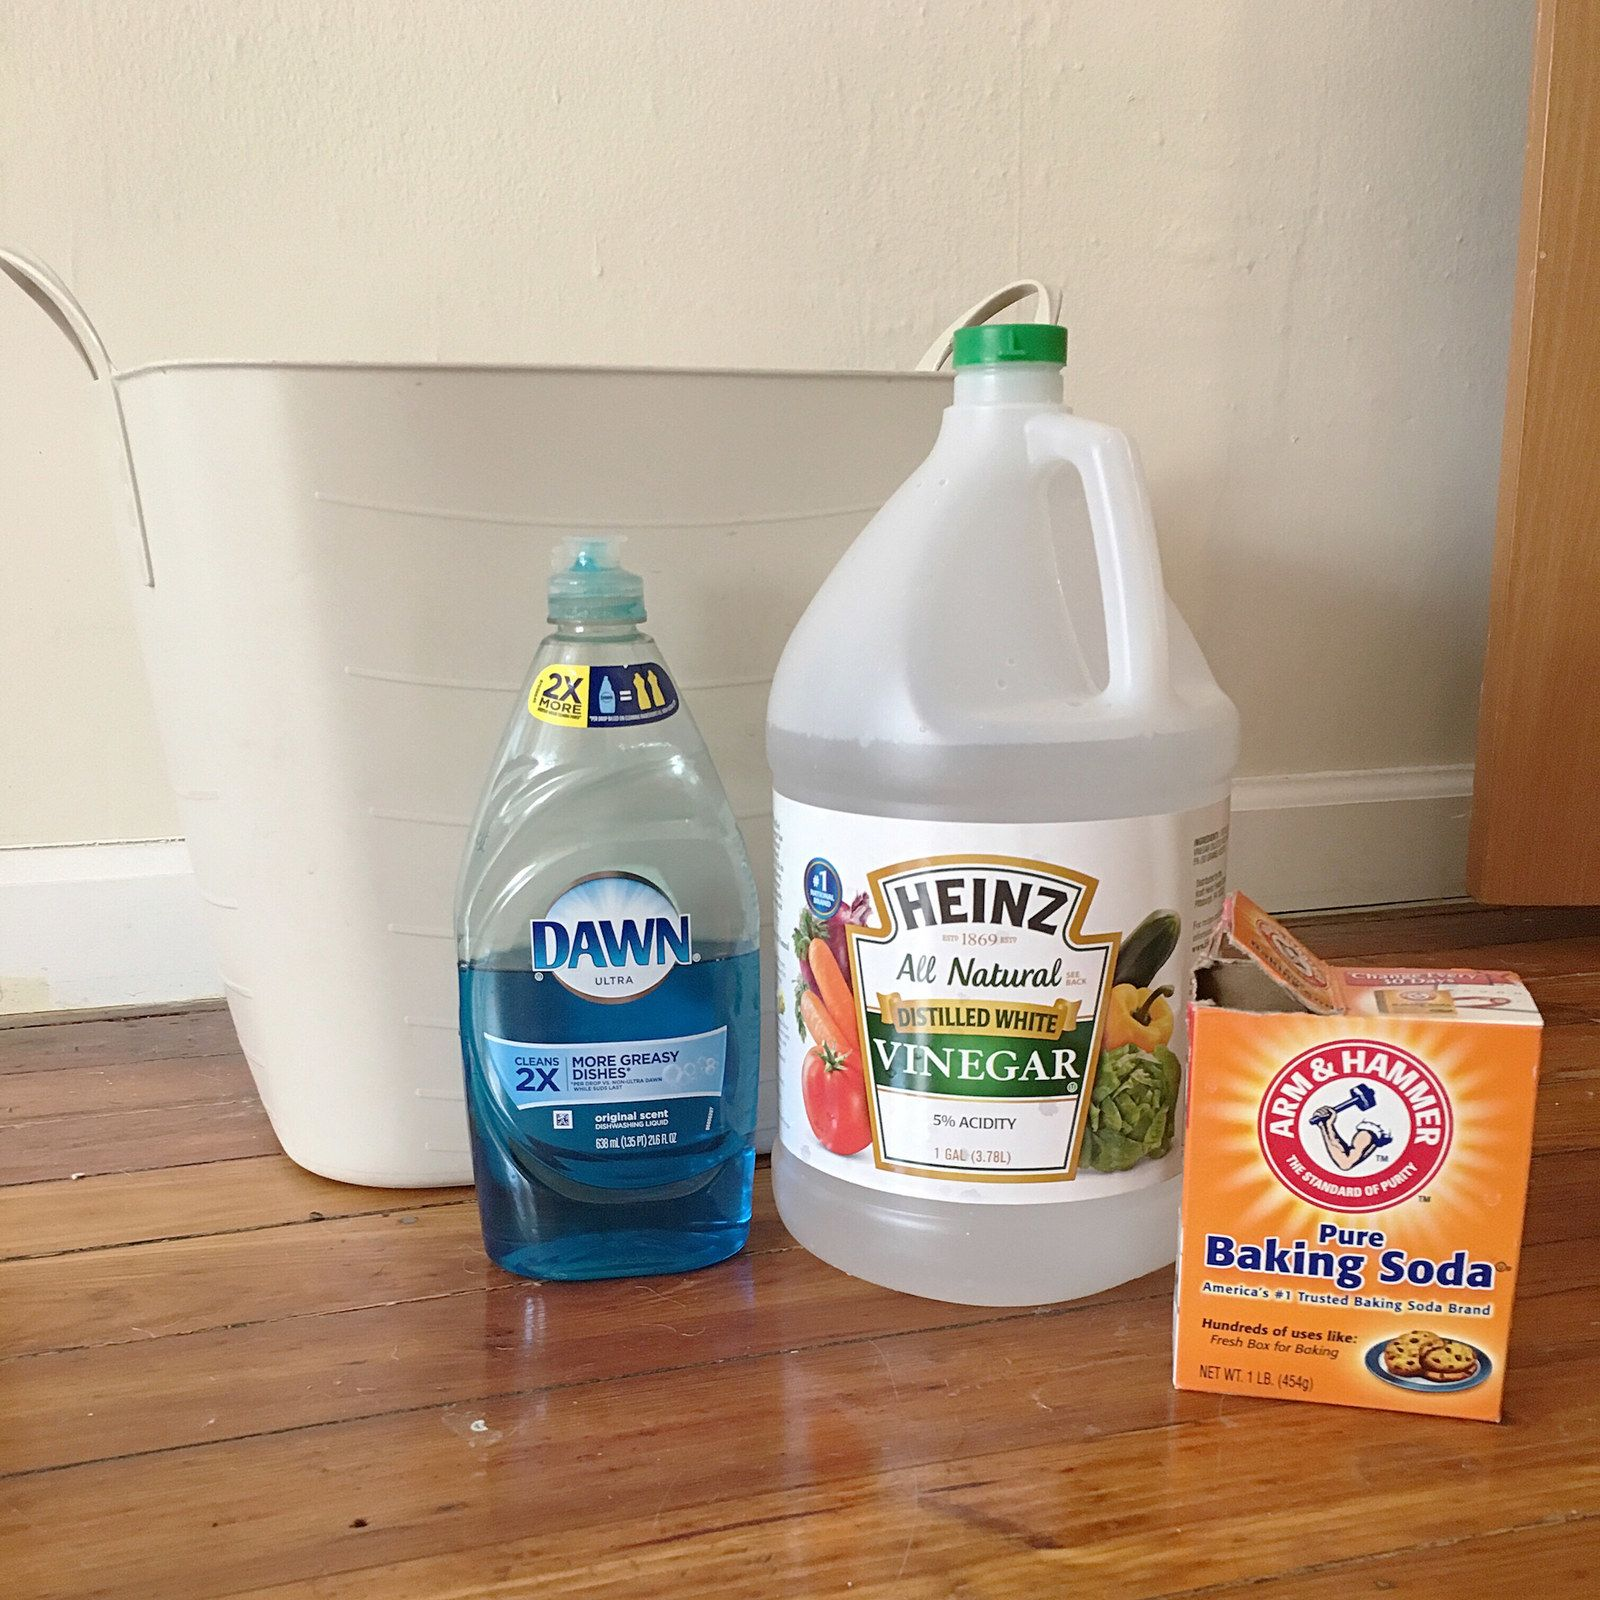 Hack 8 Make An All Purpose Floor Cleaner With Just Vinegar Baking Soda Liquid Dish Soap Water In 2020 Cleaning Hacks Cleaning Wood Cleaning